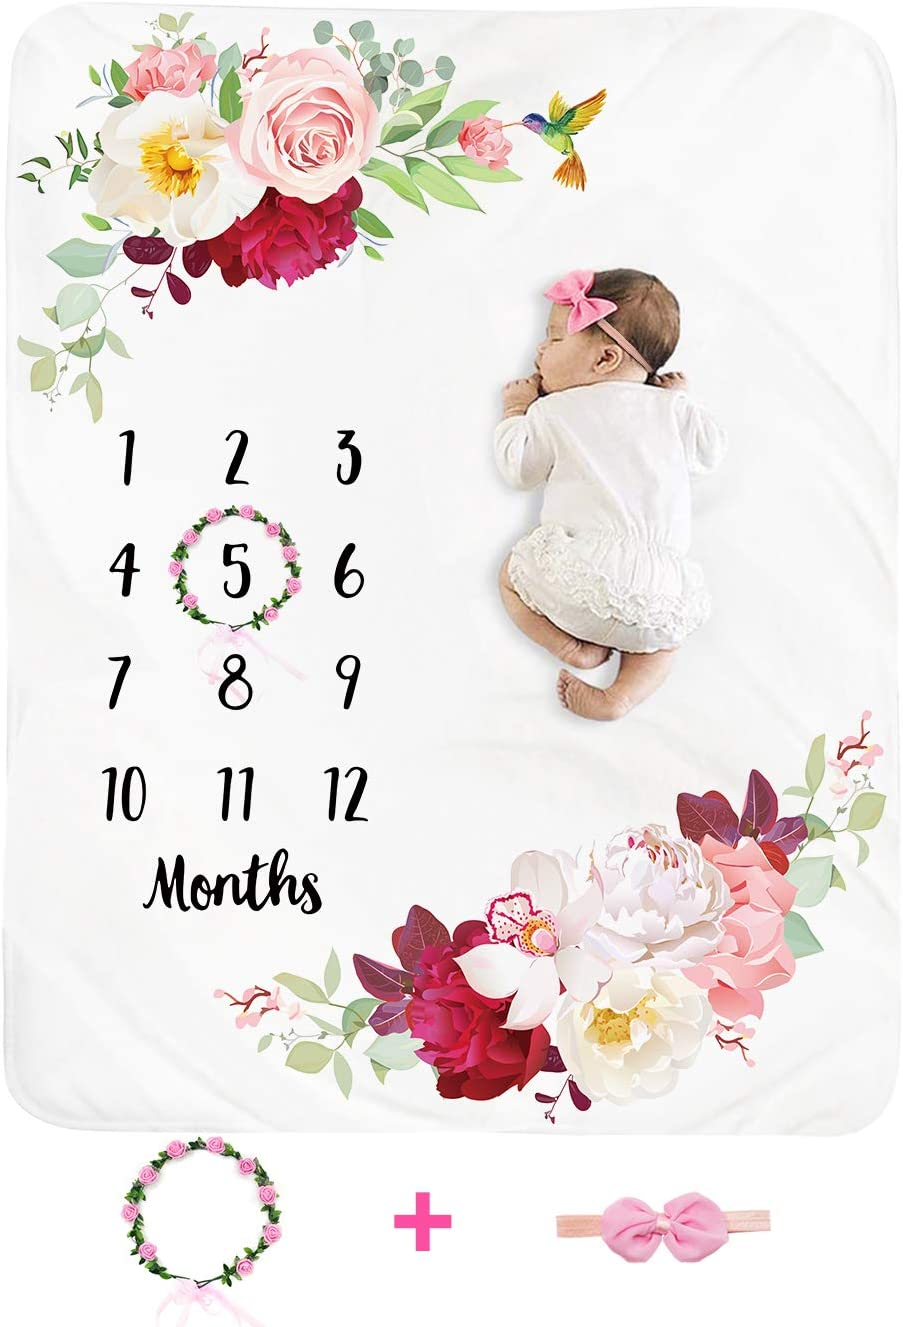 Baby Monthly Milestone Blanket Girl - Floral Newborn Month Blanket Personalized Shower Gift Soft Plush Fleece Photography Background Photo Prop Flower Blanket with Wreath Headband Large 51''x40''